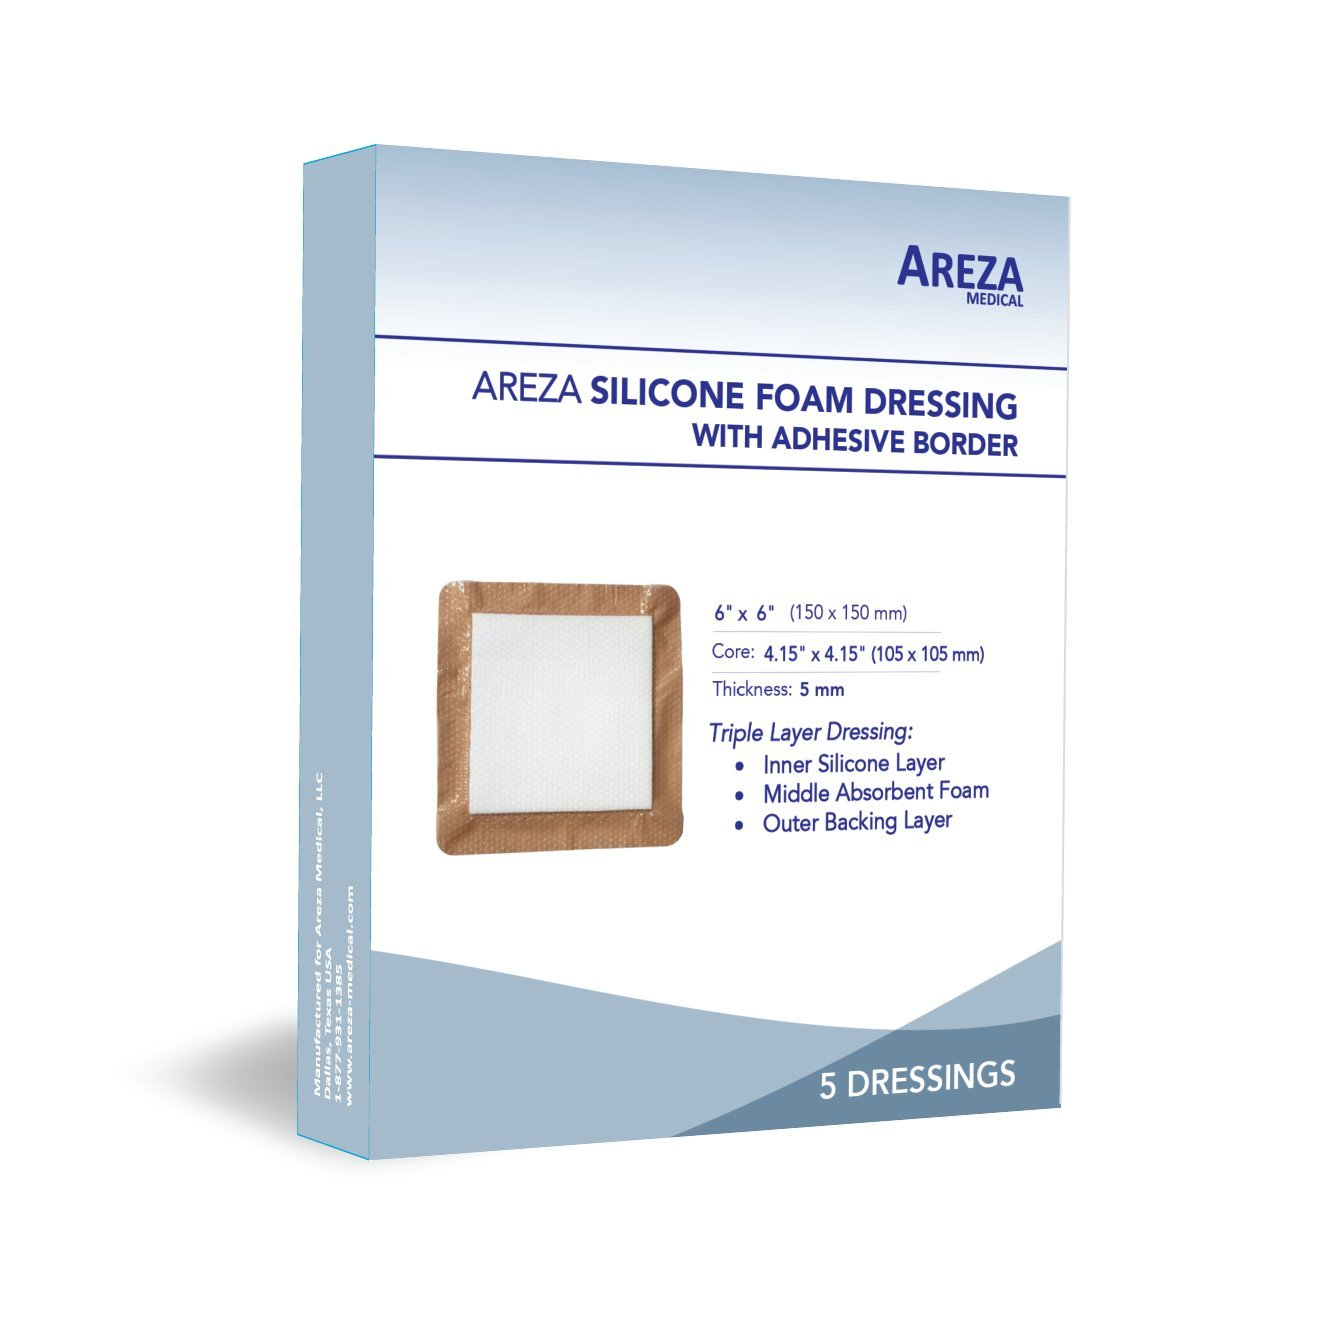 Silicone Foam Dressing with Border (Adhesive) Waterproof 6'' X 6'' (15 Cm X 15 Cm) (Central ultra absorbent-Foam Pad is 4'' X 4'') 5 Per Box (1)